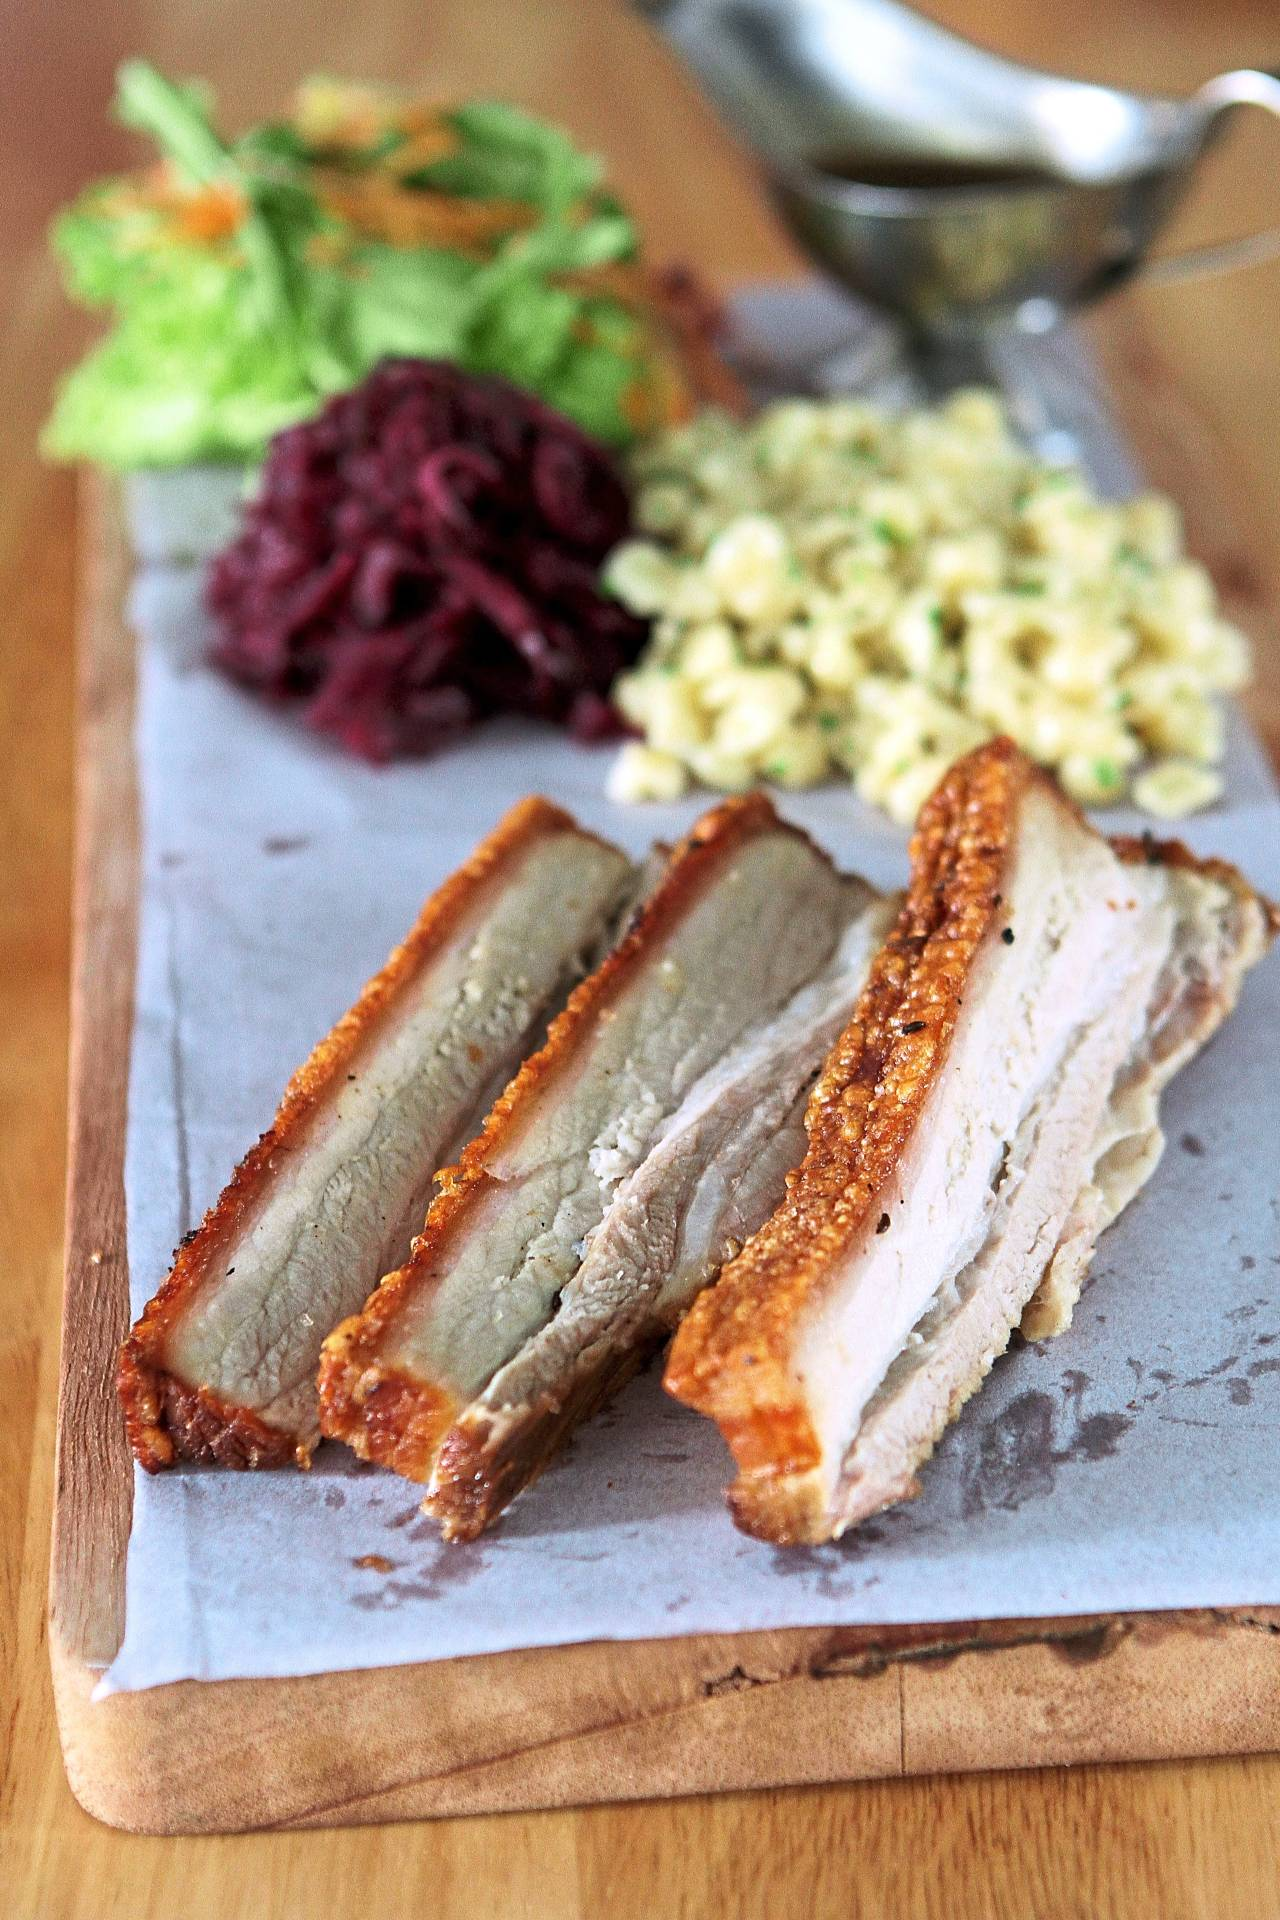 The crispy pork belly will delight the senses with a variety of textures from the crunchy skin to the tender meat.